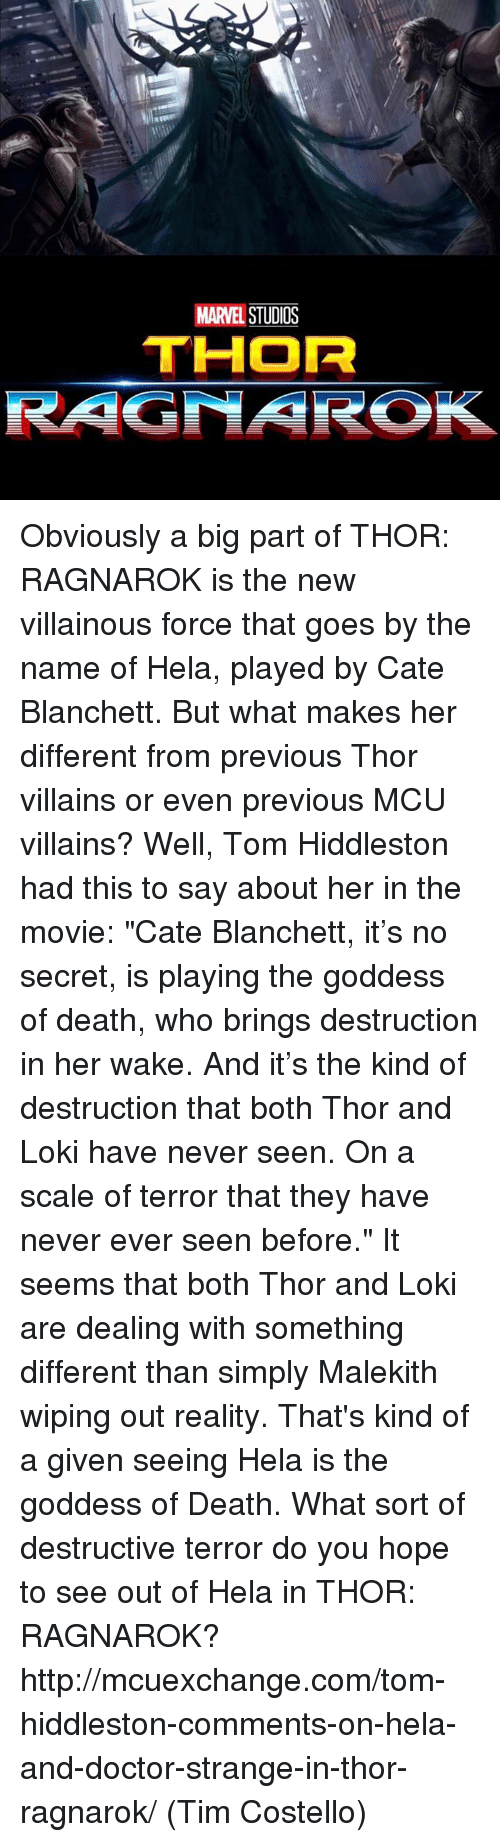 """Doctor, Memes, and Movies: MARVEL  STUDOS  THOR  RAGNAROK Obviously a big part of THOR: RAGNAROK is the new villainous force that goes by the name of Hela, played by Cate Blanchett. But what makes her different from previous Thor villains or even previous MCU villains?  Well, Tom Hiddleston had this to say about her in the movie: """"Cate Blanchett, it's no secret, is playing the goddess of death, who brings destruction in her wake. And it's the kind of destruction that both Thor and Loki have never seen. On a scale of terror that they have never ever seen before.""""  It seems that both Thor and Loki are dealing with something different than simply Malekith wiping out reality. That's kind of a given seeing Hela is the goddess of Death. What sort of destructive terror do you hope to see out of Hela in THOR: RAGNAROK?  http://mcuexchange.com/tom-hiddleston-comments-on-hela-and-doctor-strange-in-thor-ragnarok/  (Tim Costello)"""